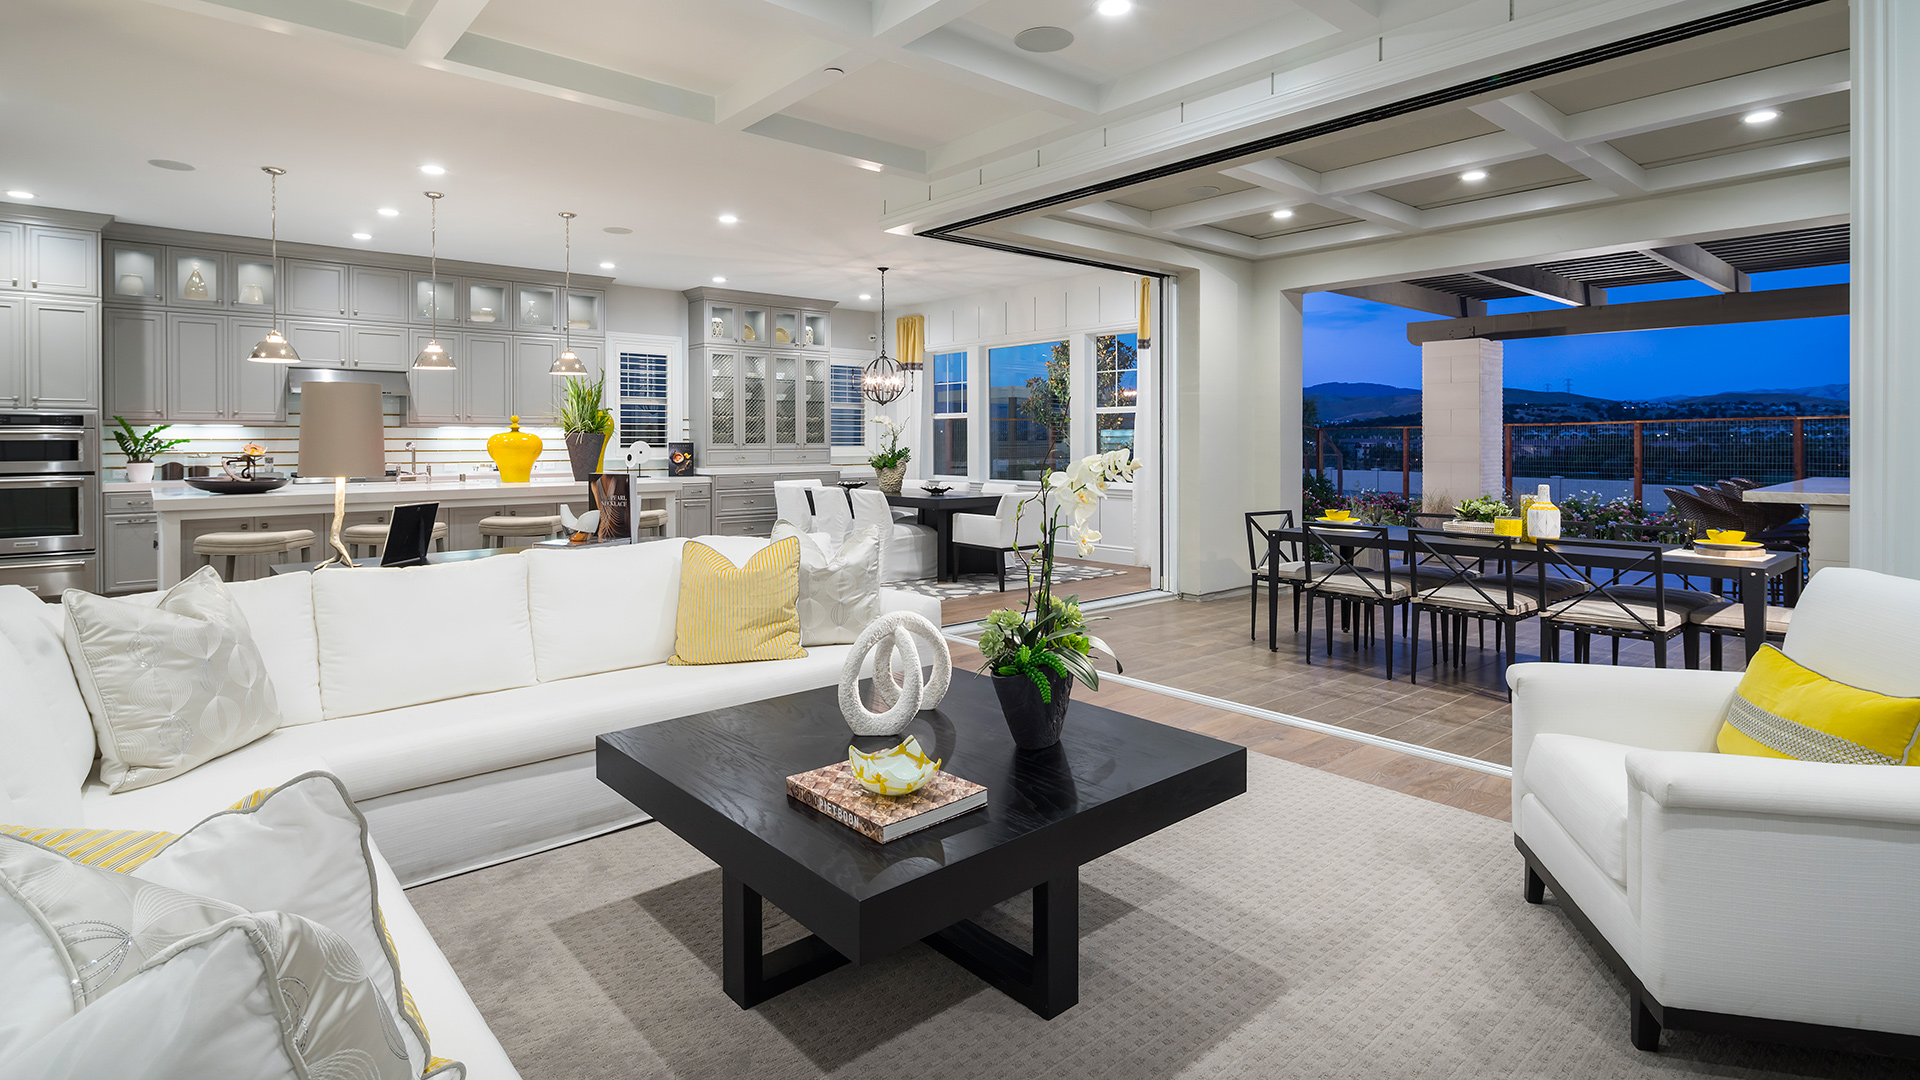 Luxurious interior and exterior living spaces offer the perfect blend of indoor and outdoor living.